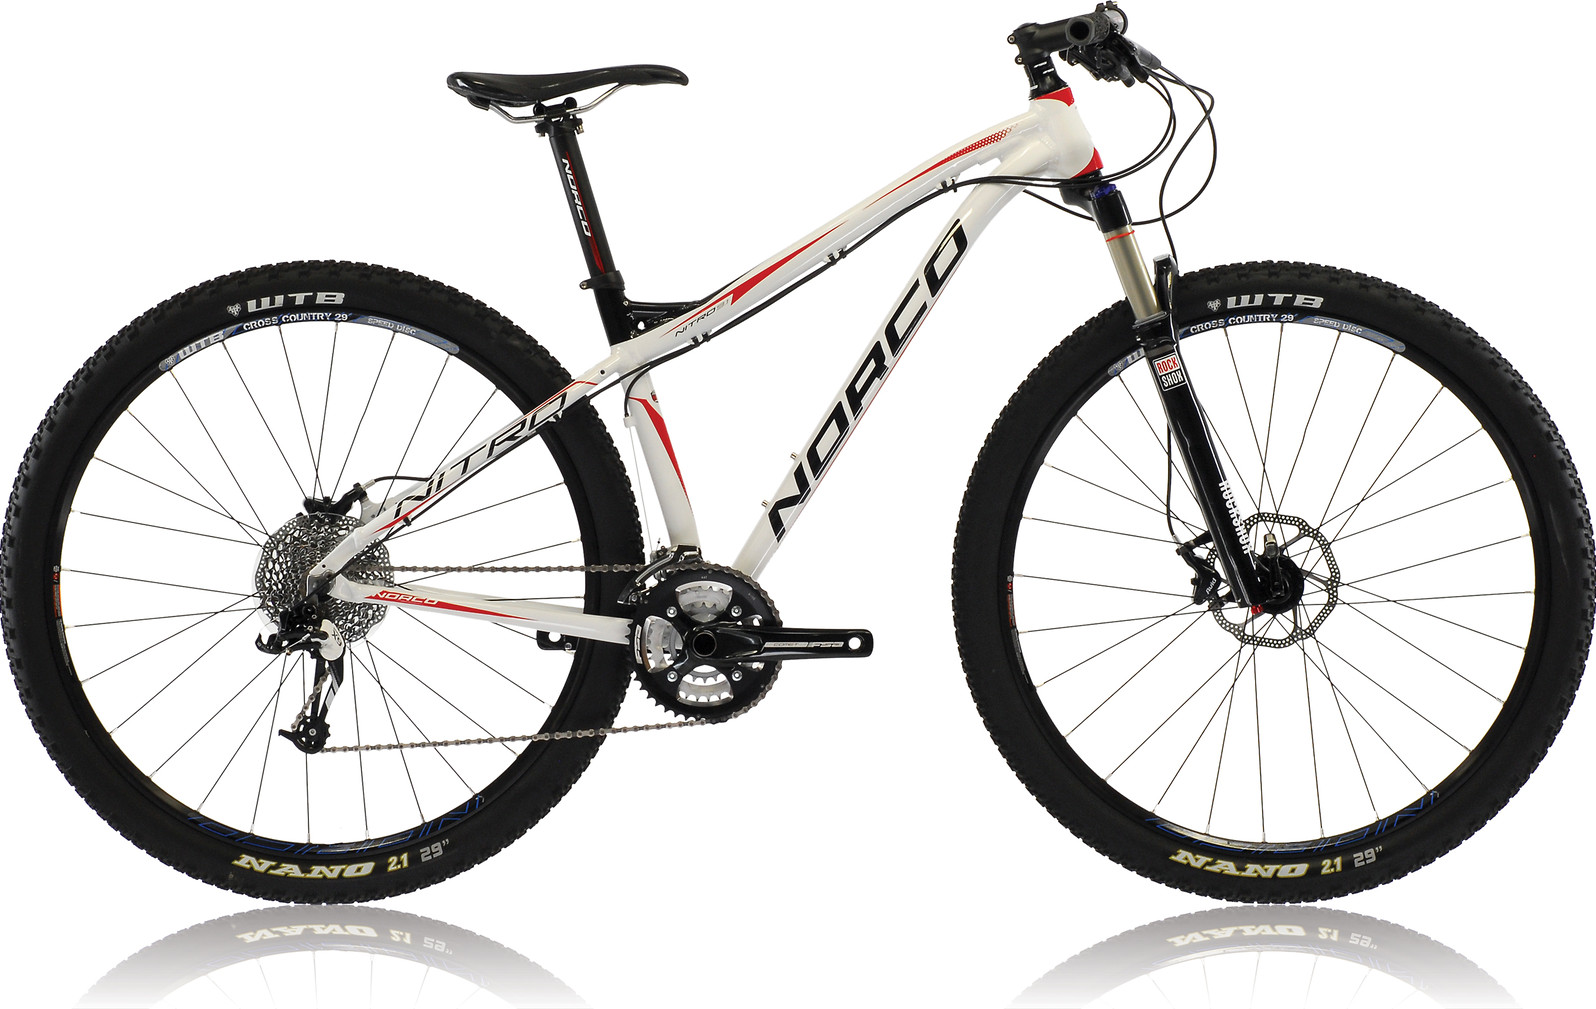 2013 Norco Nitro 9 1 Bike Reviews Comparisons Specs Mountain